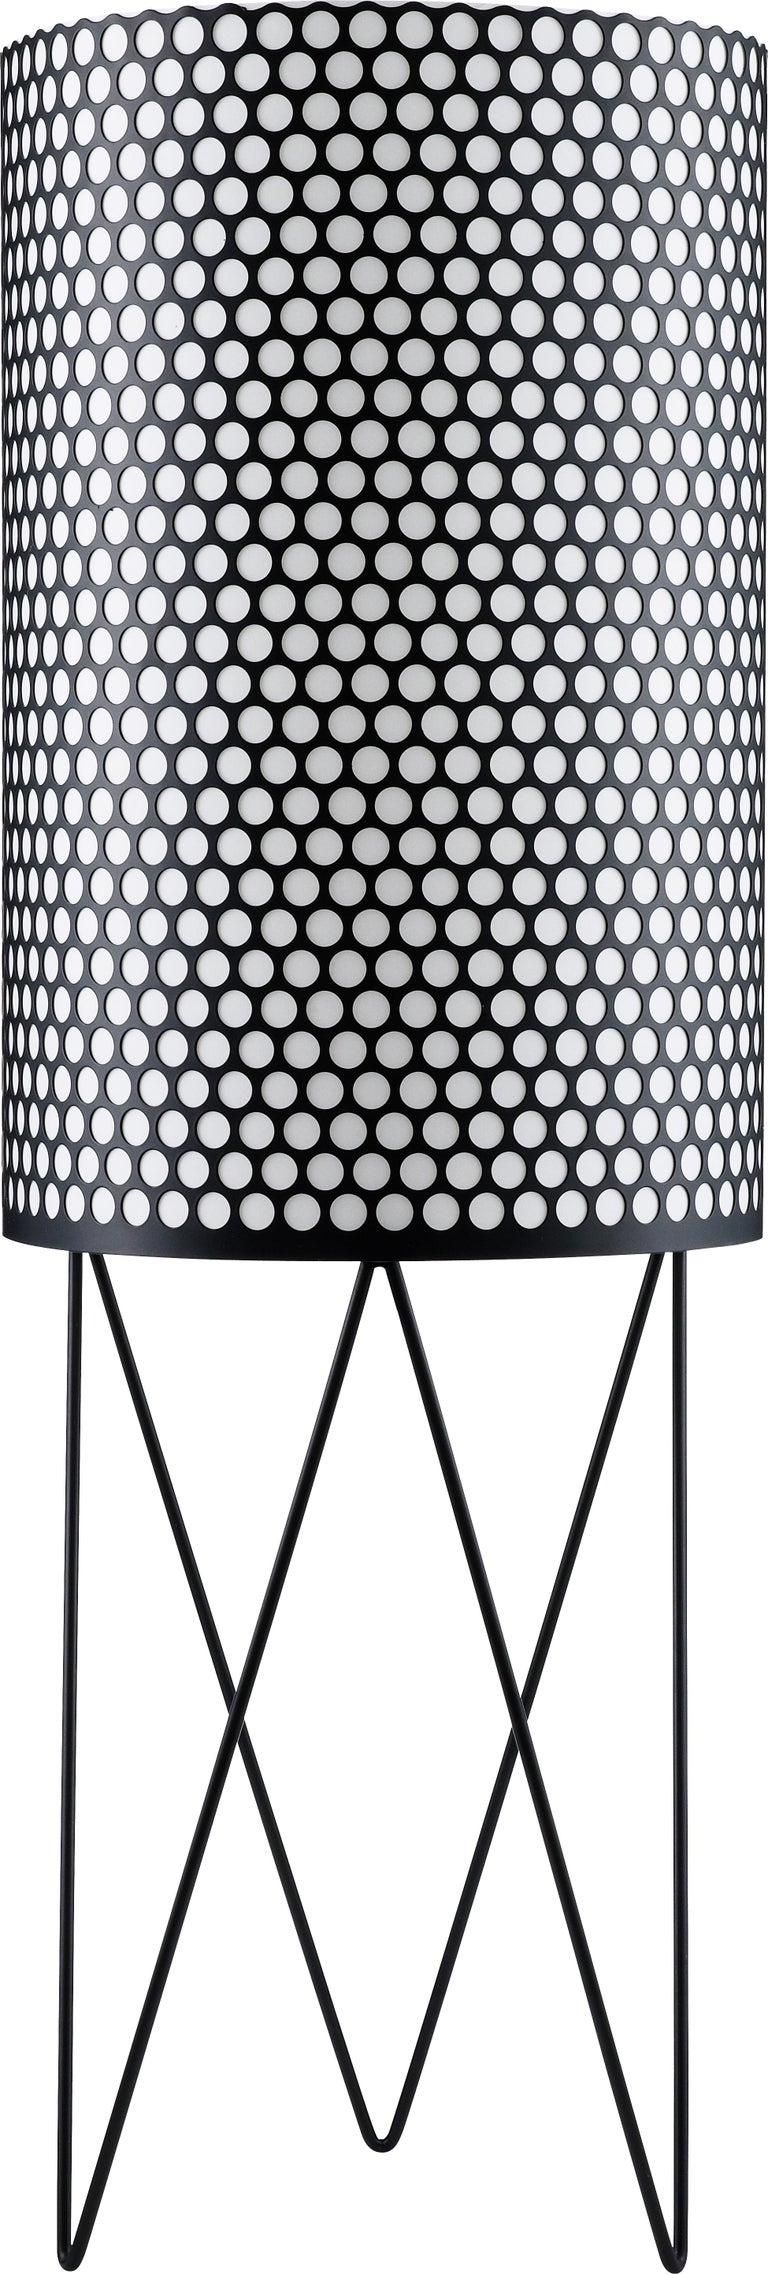 Barba Corsini 'PD2' Pedrera floor lamp in white. Executed in a matte white painted perforated metal shade with white interior diffuser.  Price is per item. Each finish includes a matching cord.  The PD2 floor lamp is designed in 1955 by Barba